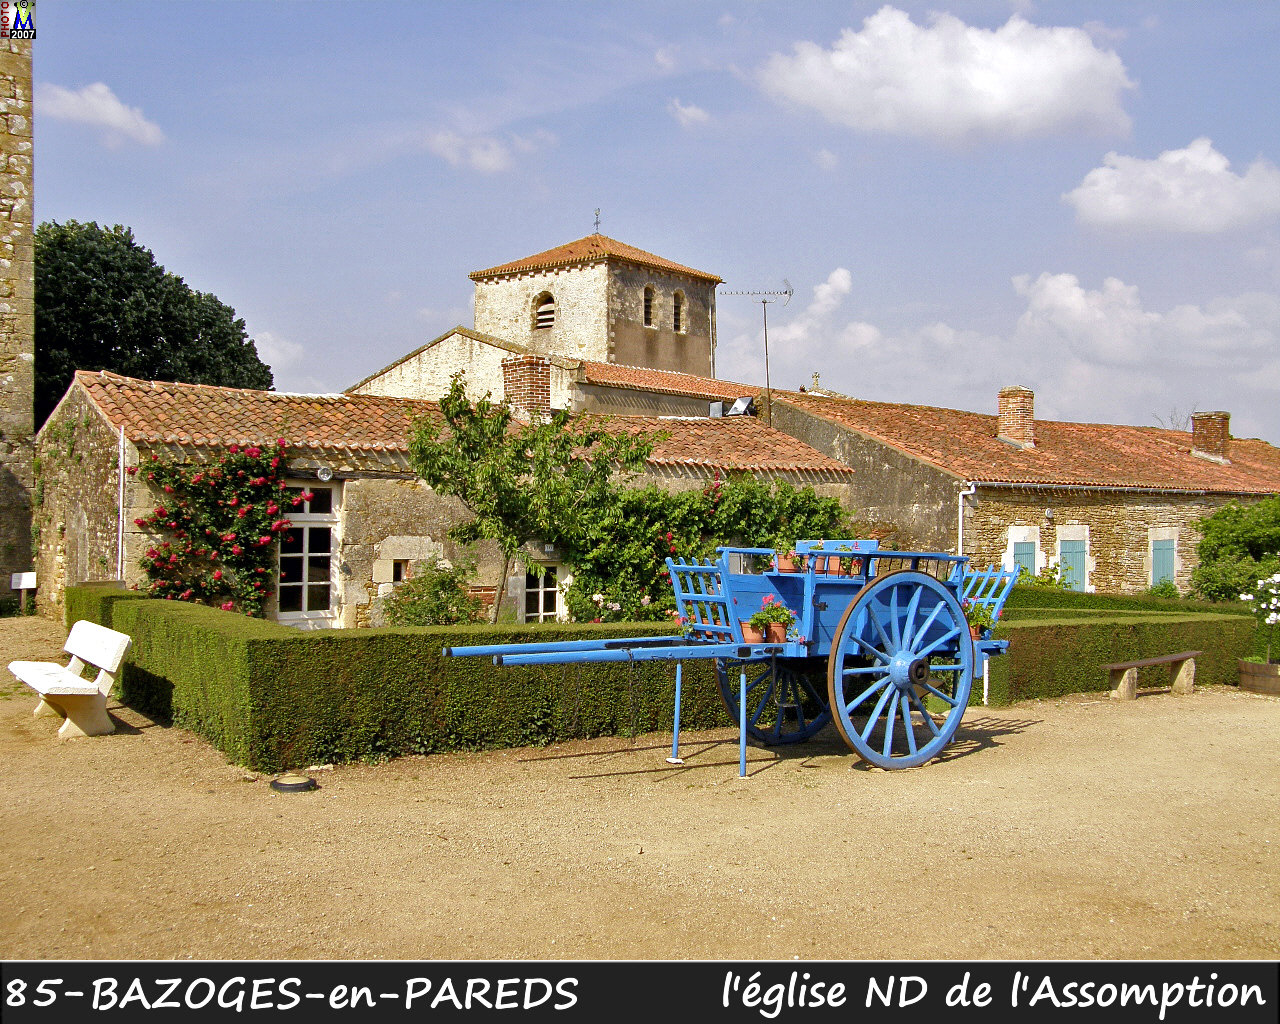 85BAZOGES-PAREDS_eglise_102.jpg